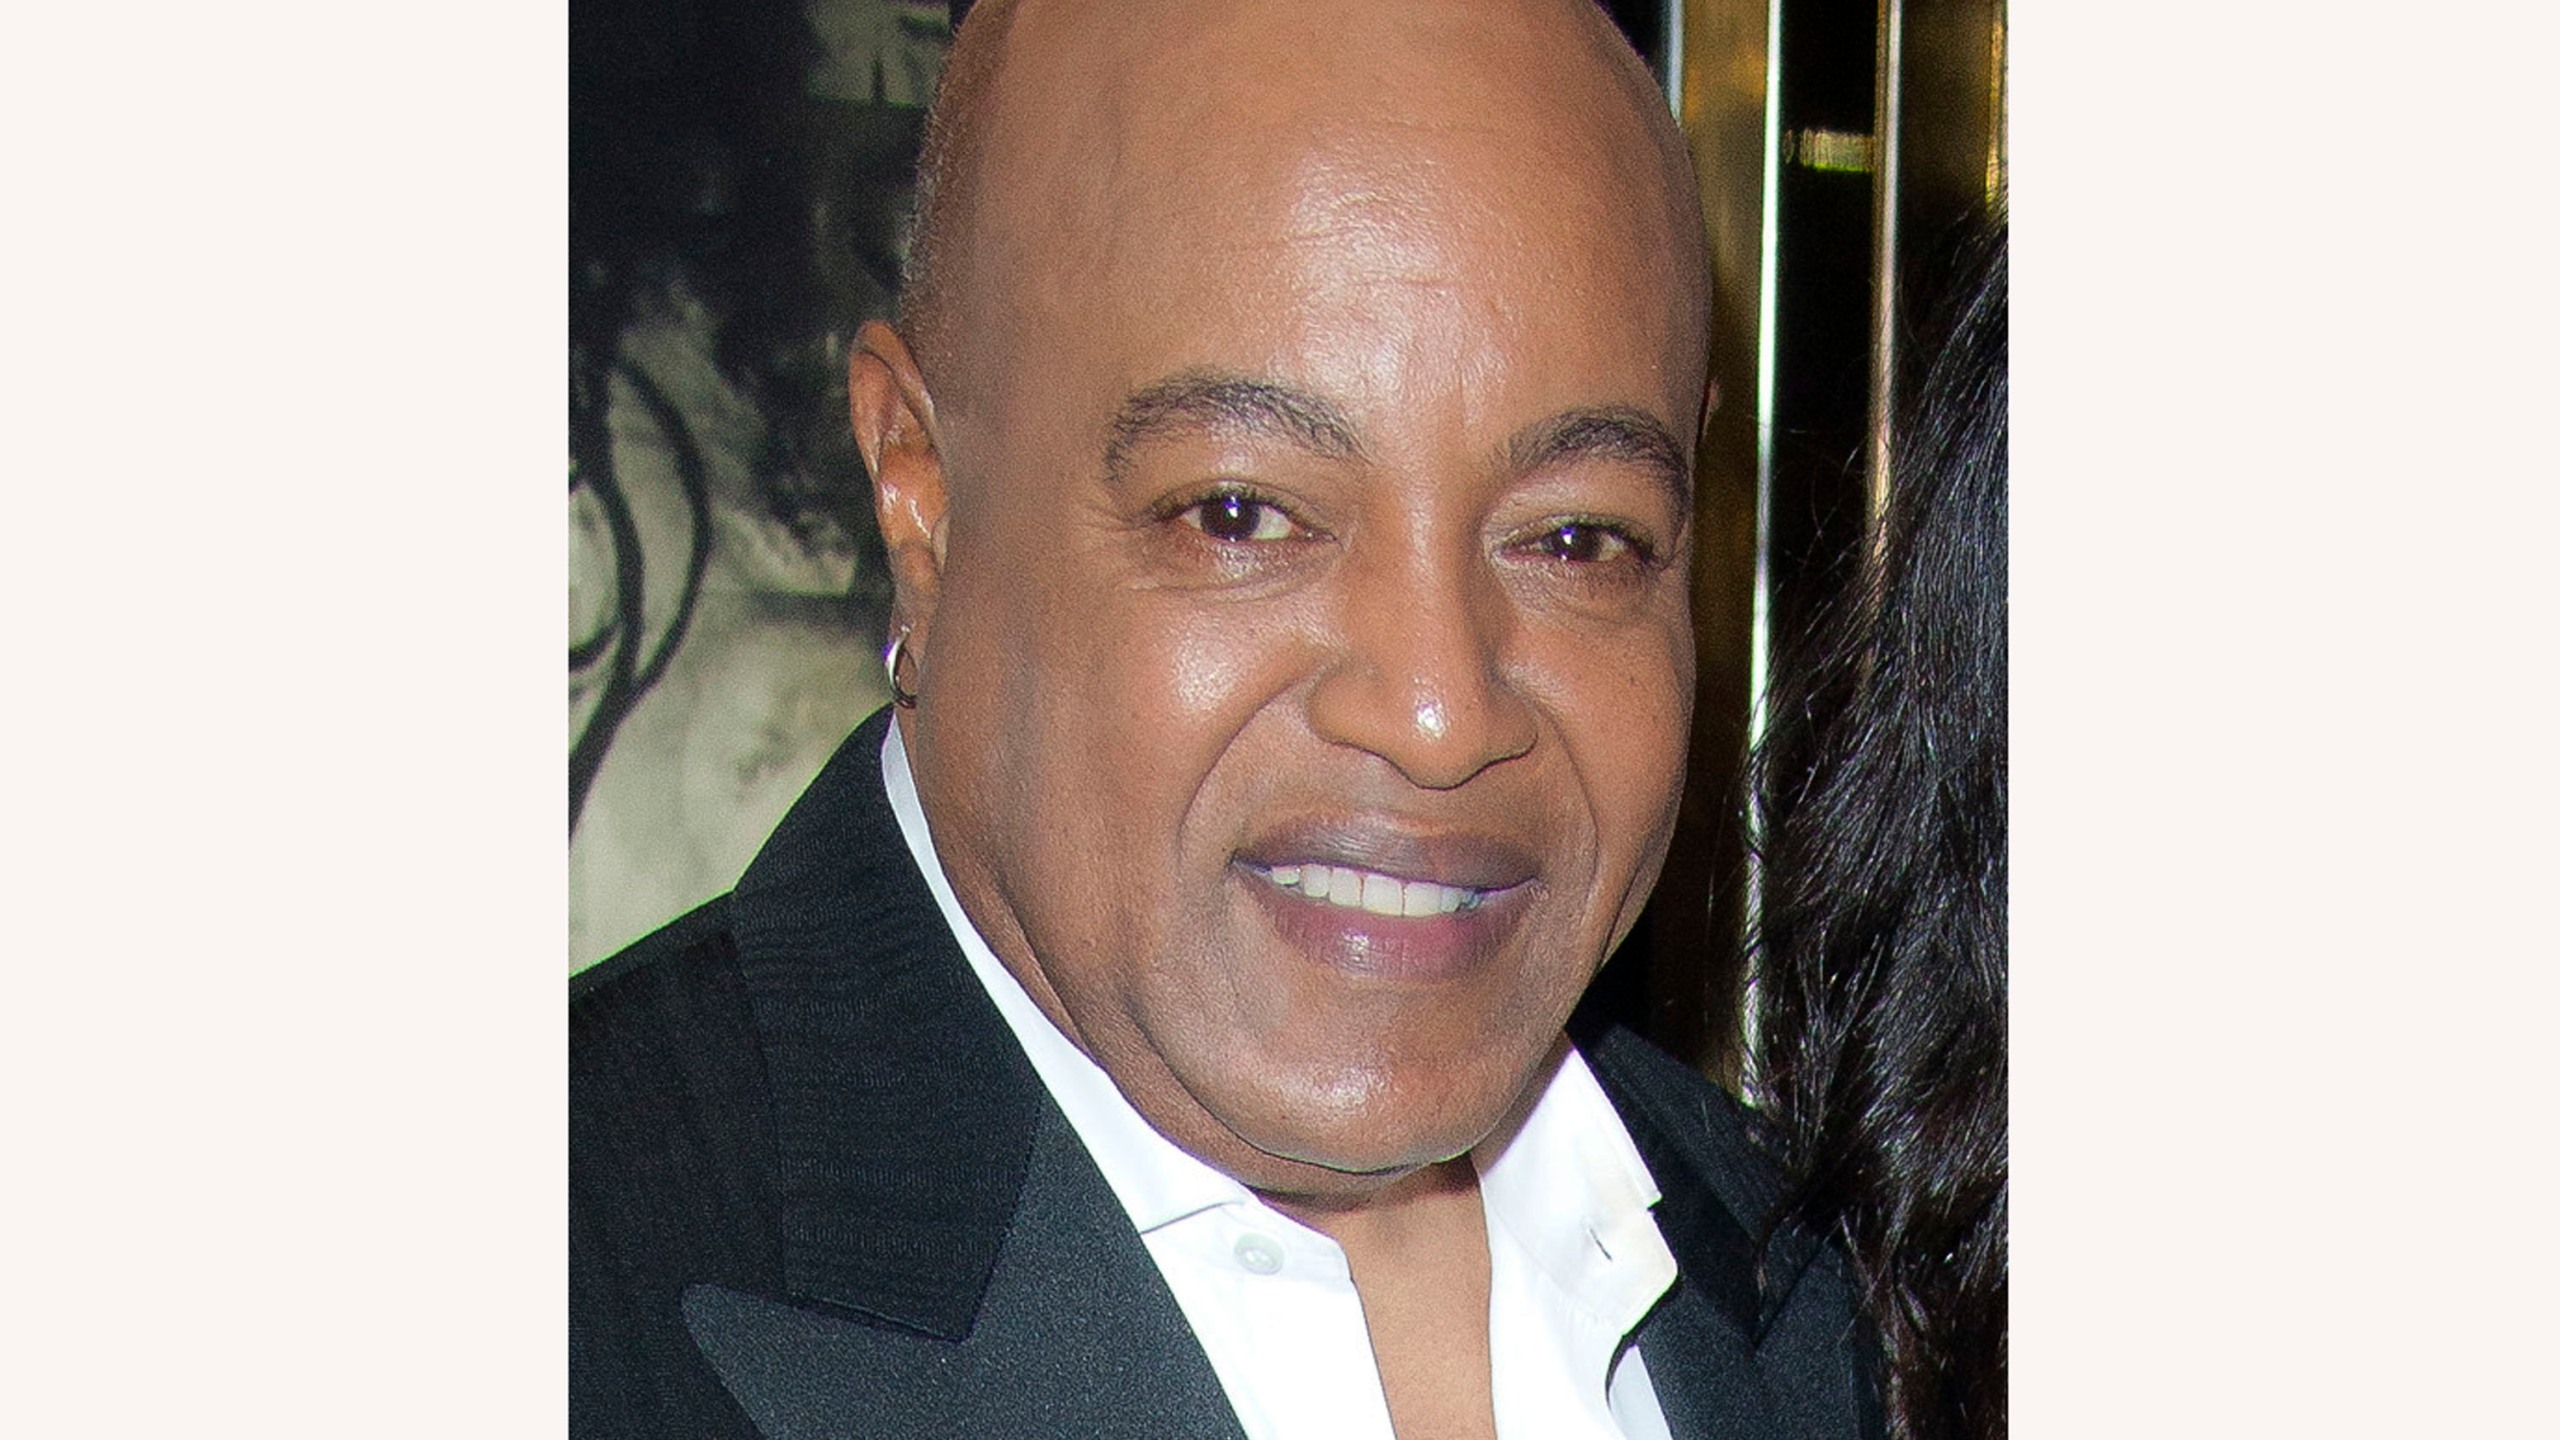 People Peabo Bryson_1557104958288